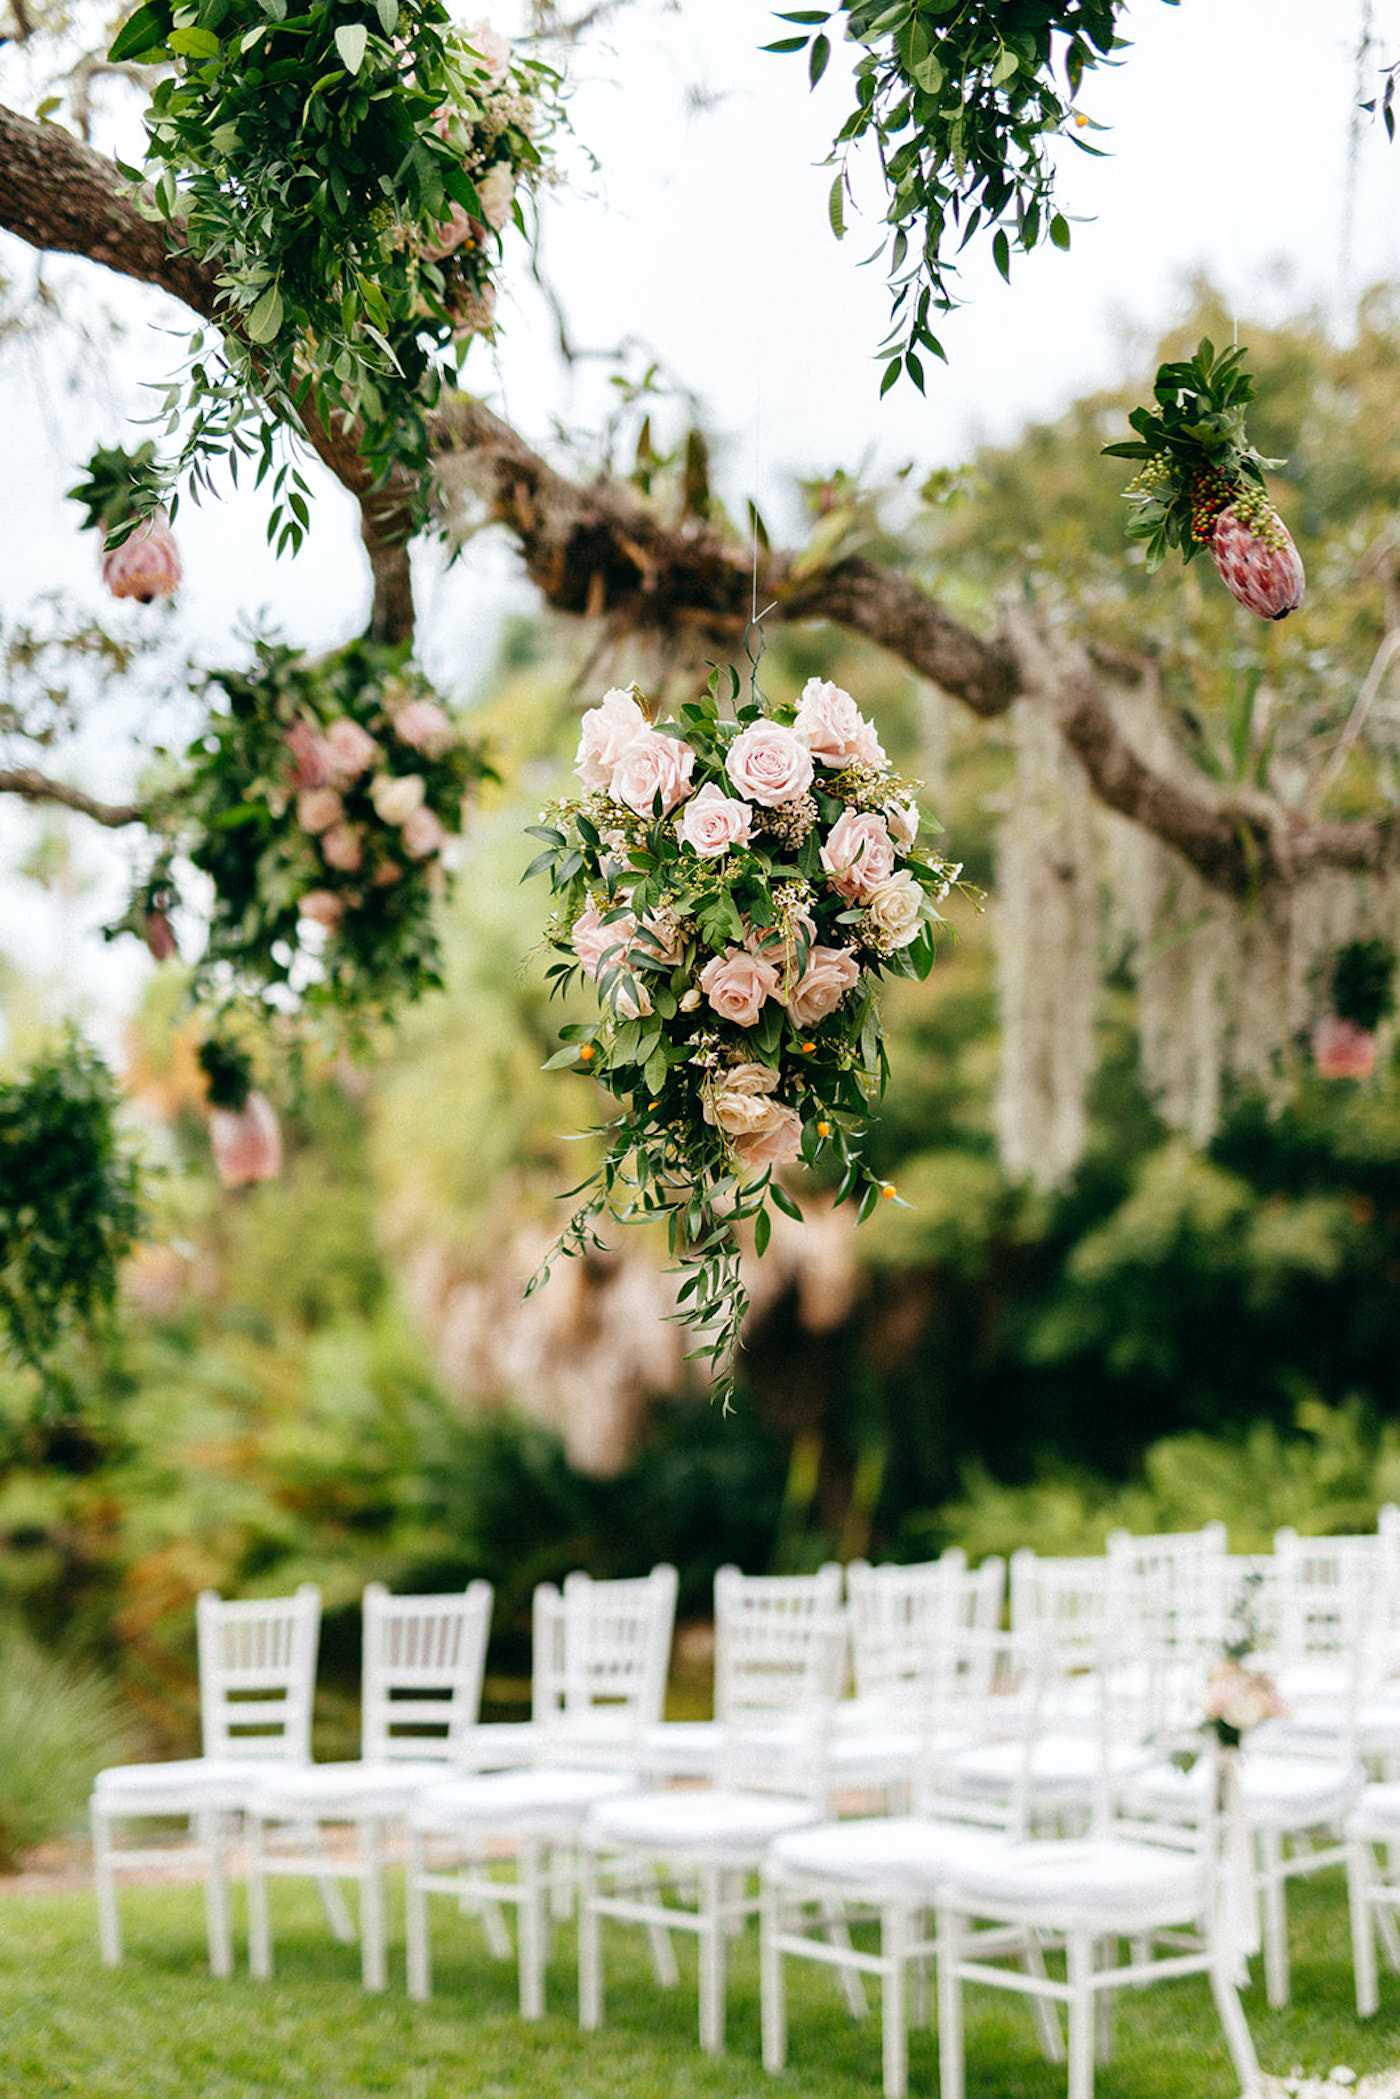 Romantic, Garden Inspired Wedding Ceremony, Large Floral Decor Hanging From Tree Branches Outside, Blush Pink Roses and Peonies, with Greenery, White Chiavari Chairs   Florida Wedding Planner NK Weddings   Marie Selby Botanical Gardens